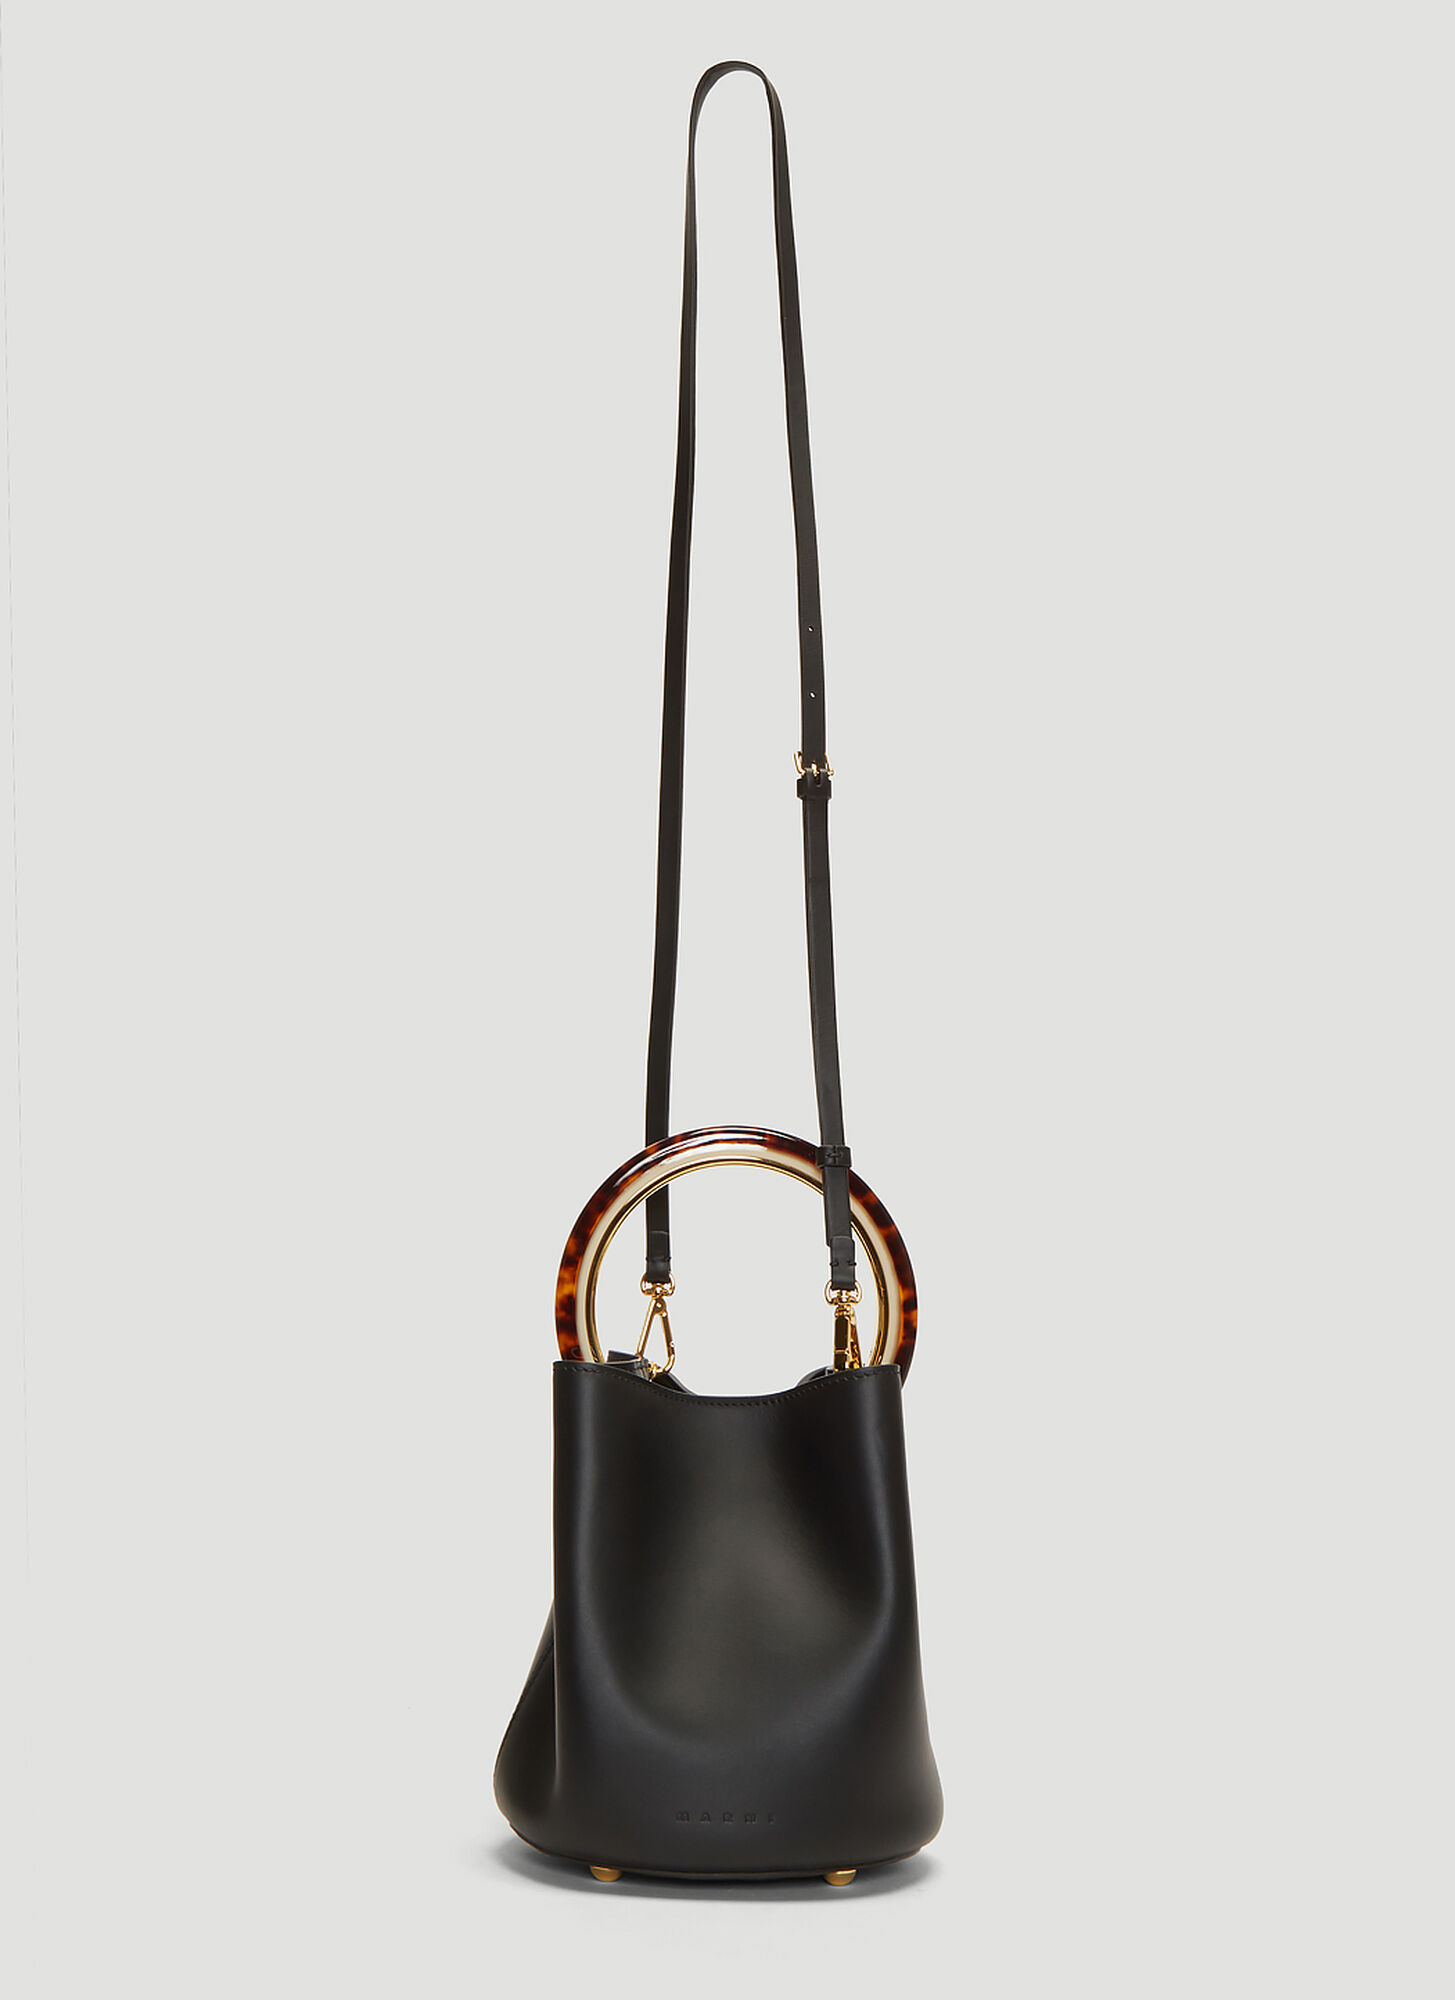 Marni Pannier Leather Bucket Bag in Black